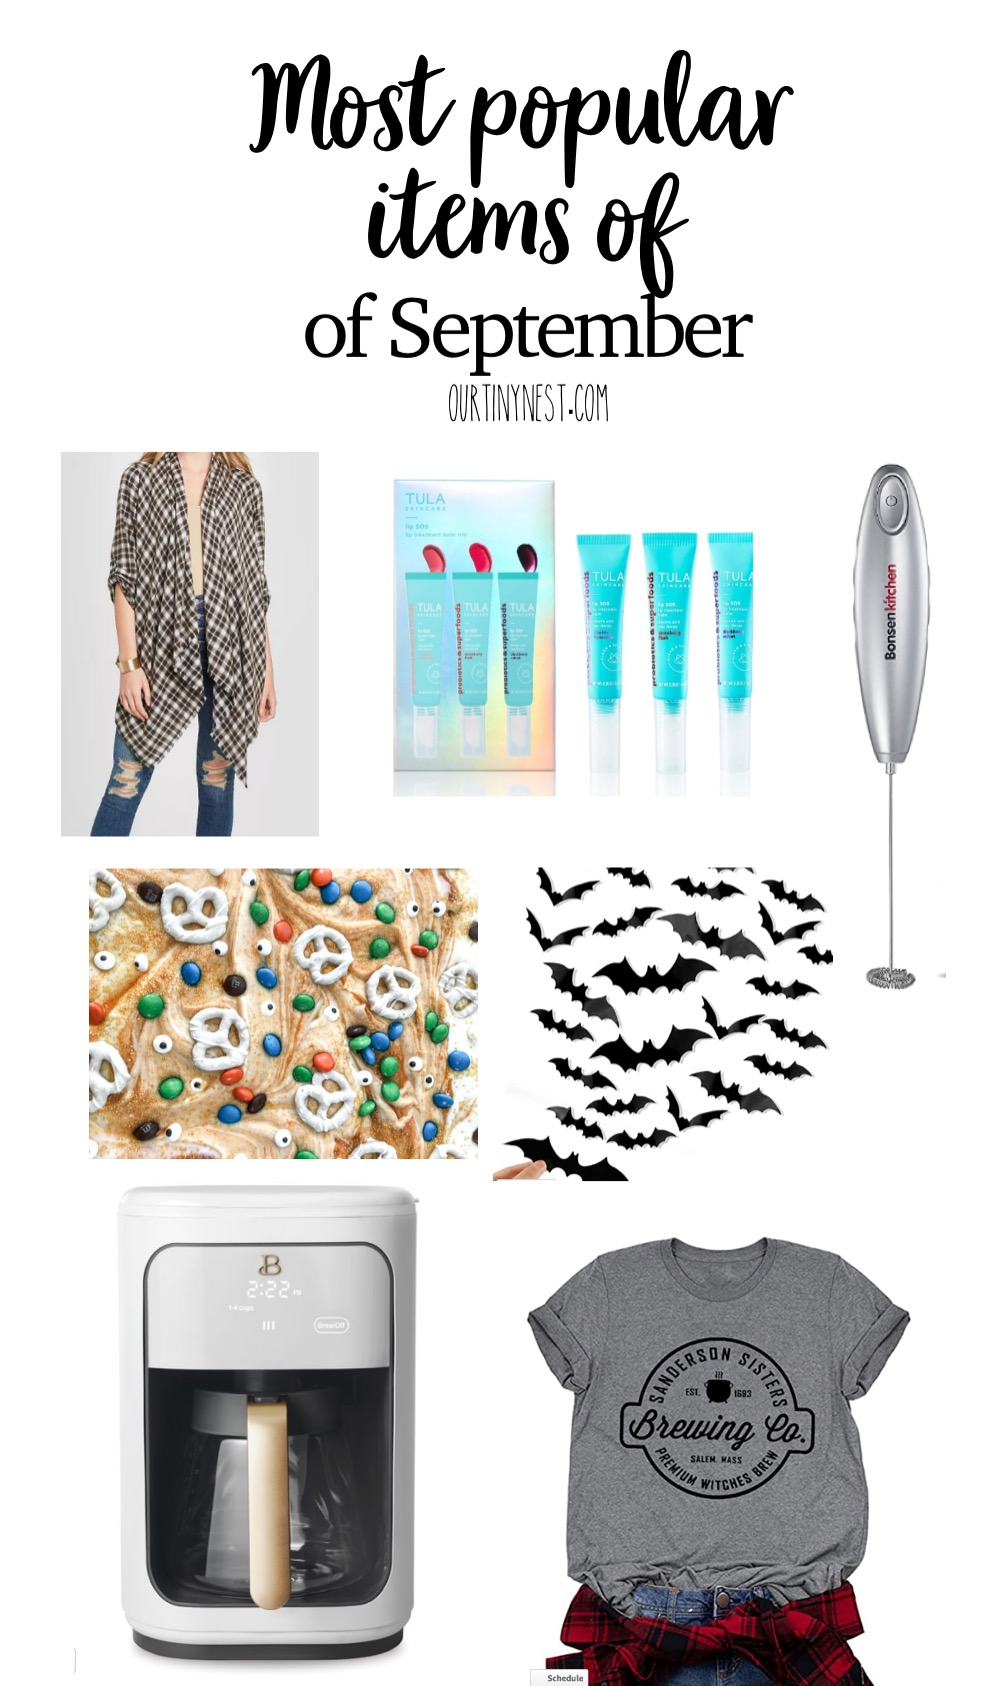 Your top purchases of September